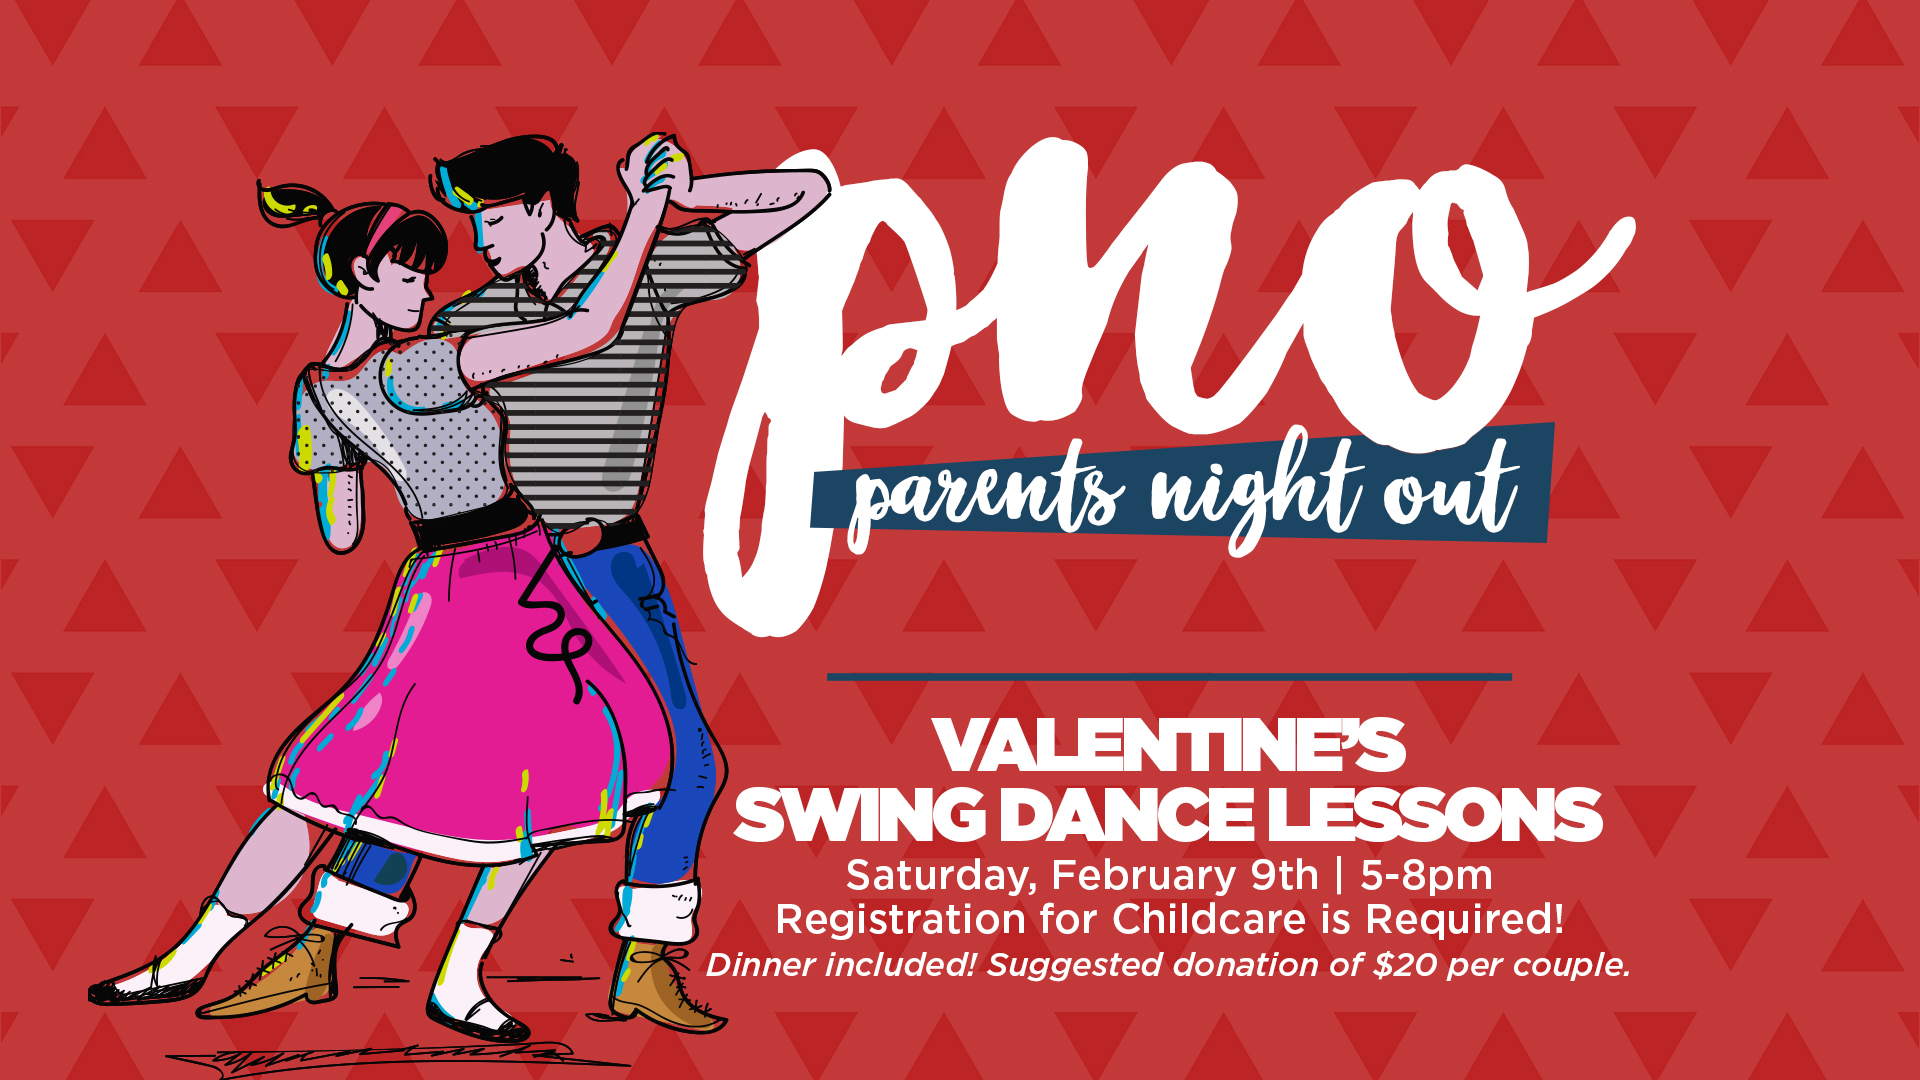 This month's Parent's Night Out is not just for parents, but for any couples! Join us for a Valentine's dinner and swing dance lessons on Saturday, February 9th, from 5-8pm. Registration is required for all participants and kids needing child care. A $20 donation is suggested to help out with the costs. A professional swing dance instructor will guide group lessons from 5-6pm, a romantic dinner will be from 6-7pm, and from 7-8pm couples can test out what they've learned. Child care will also be providing supper for the kids.